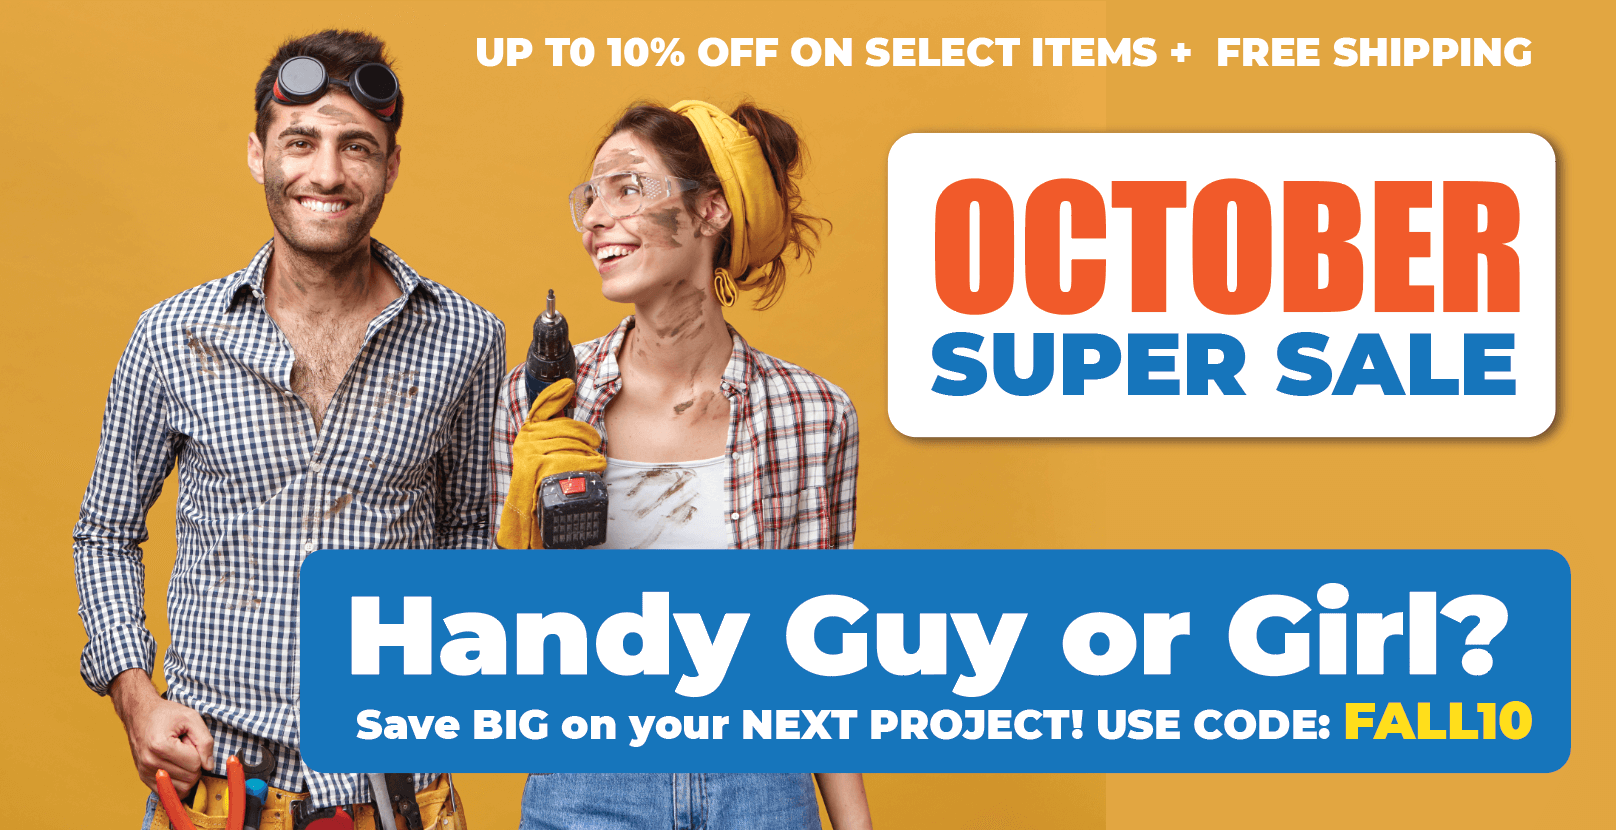 Up to 10% off select items and free shipping in October!